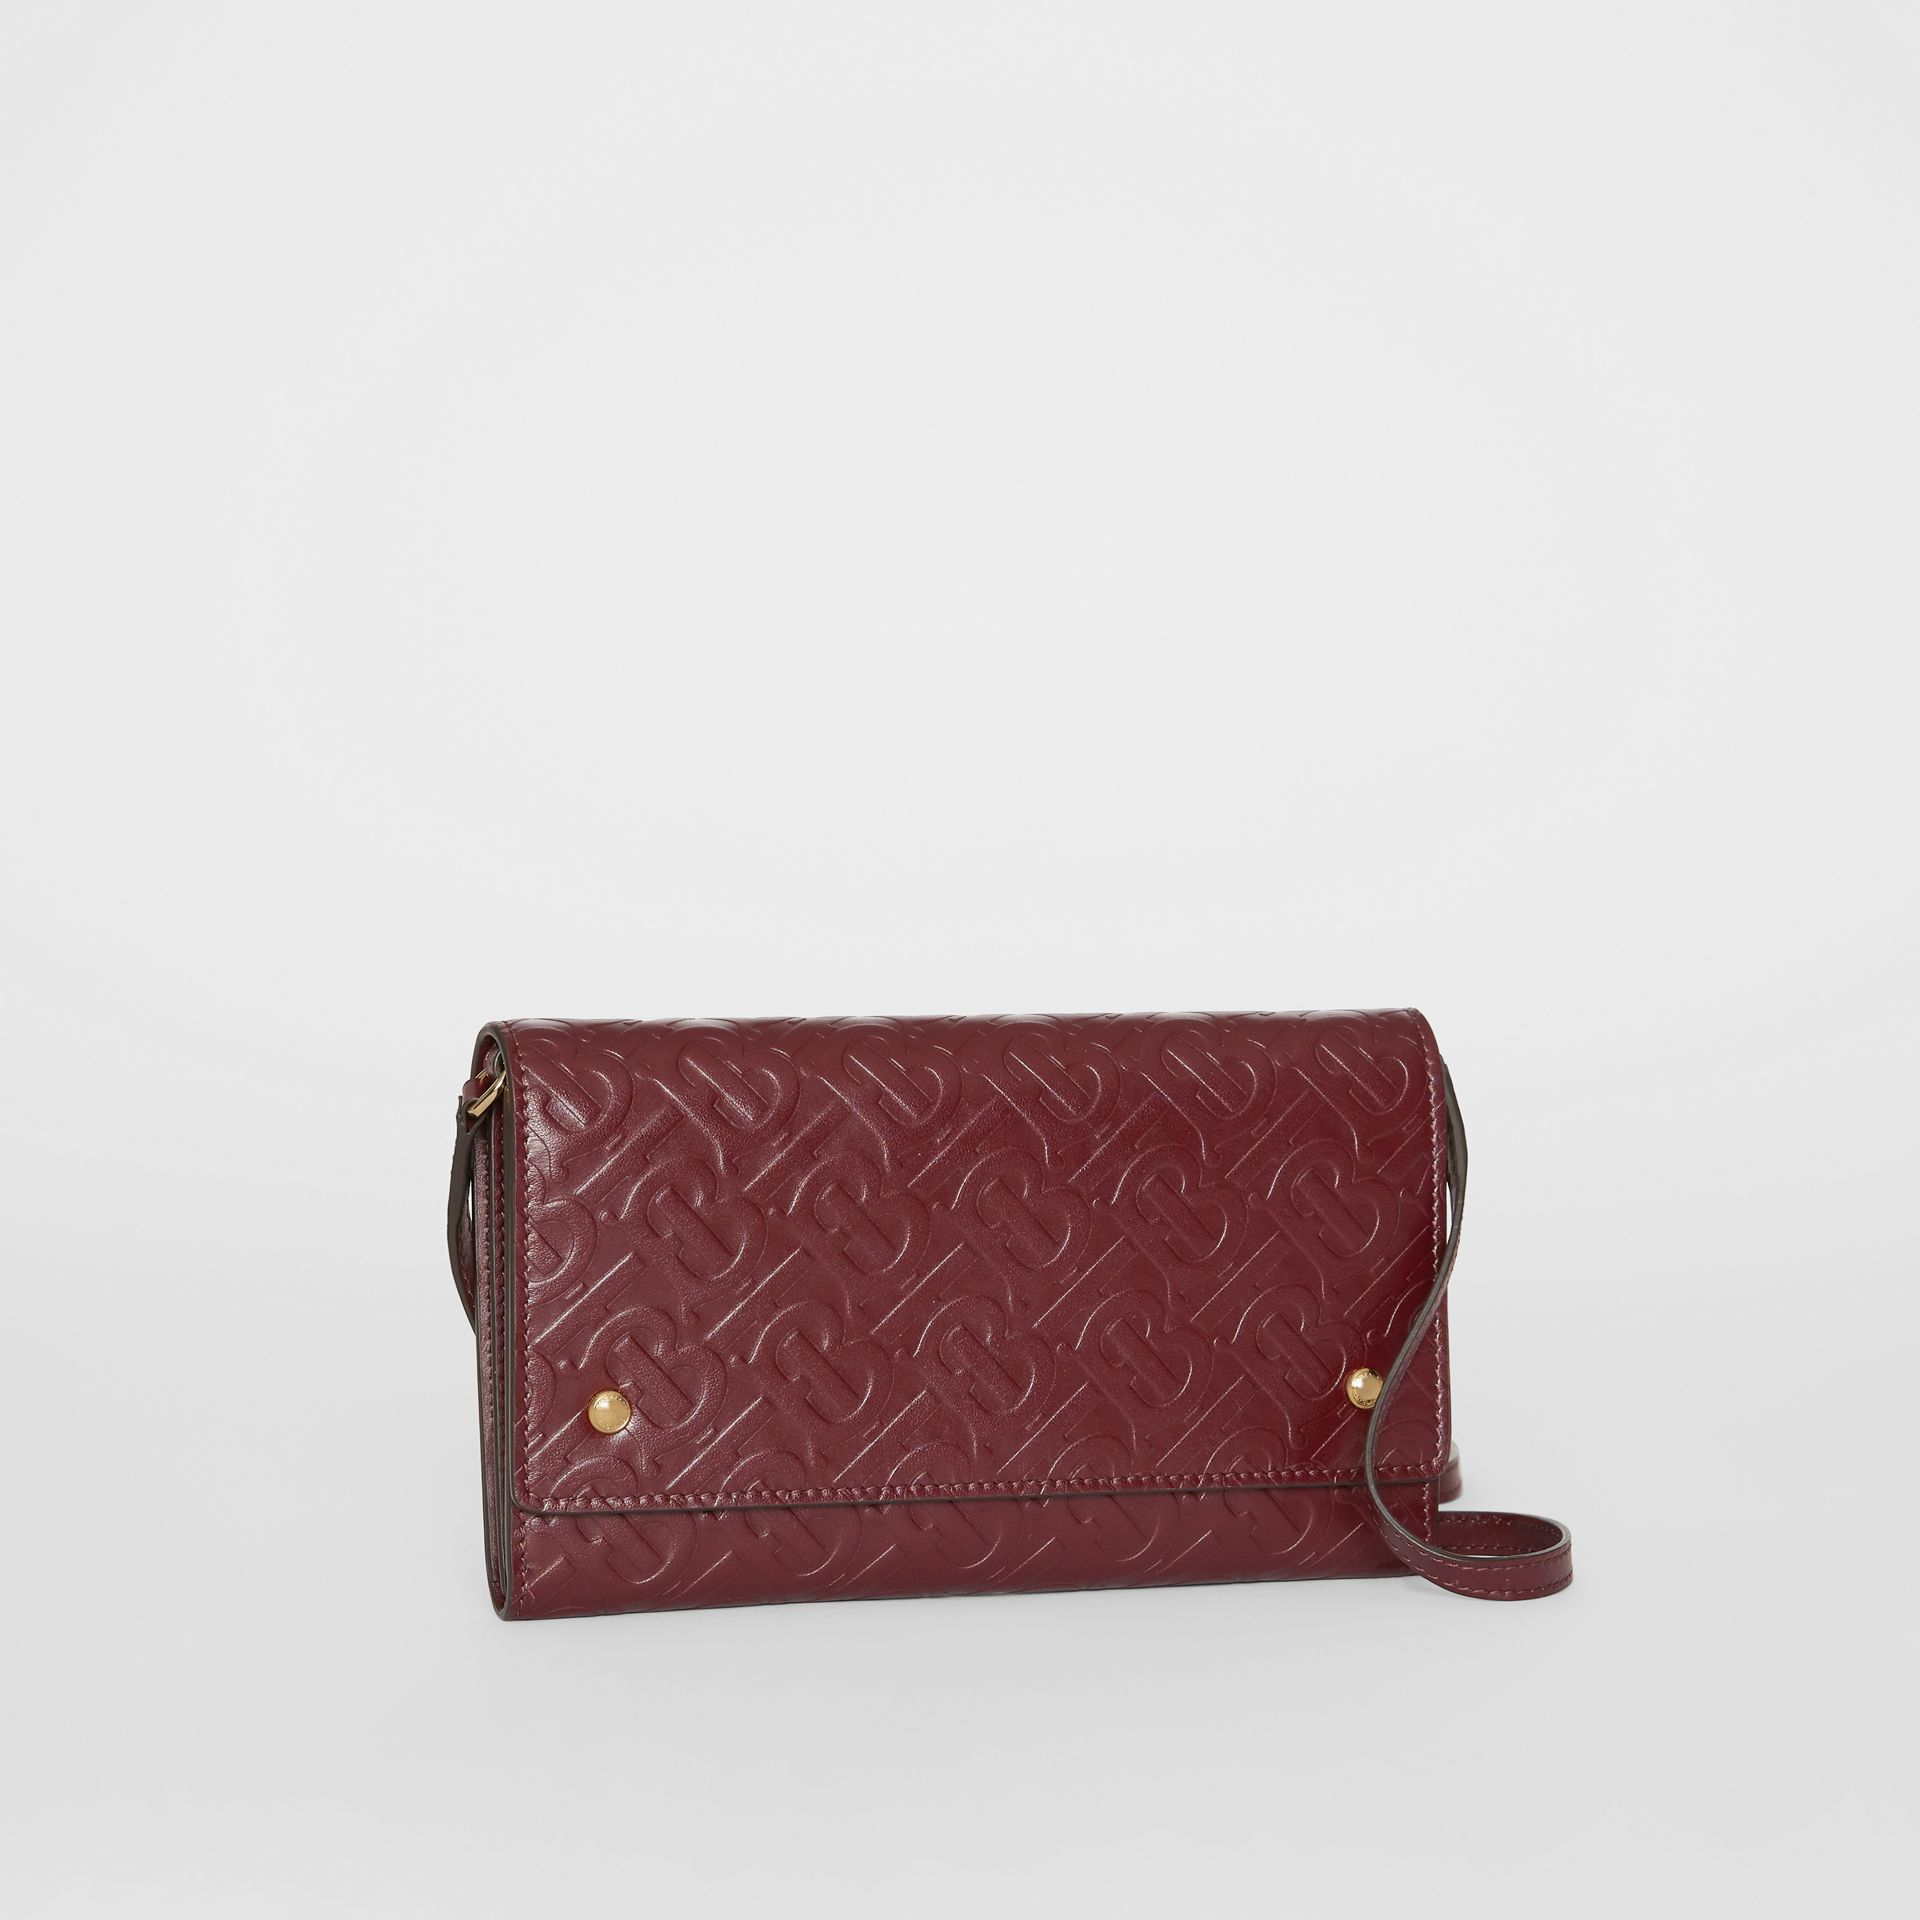 Monogram Leather Wallet with Detachable Strap in Oxblood - Women | Burberry Singapore - gallery image 6